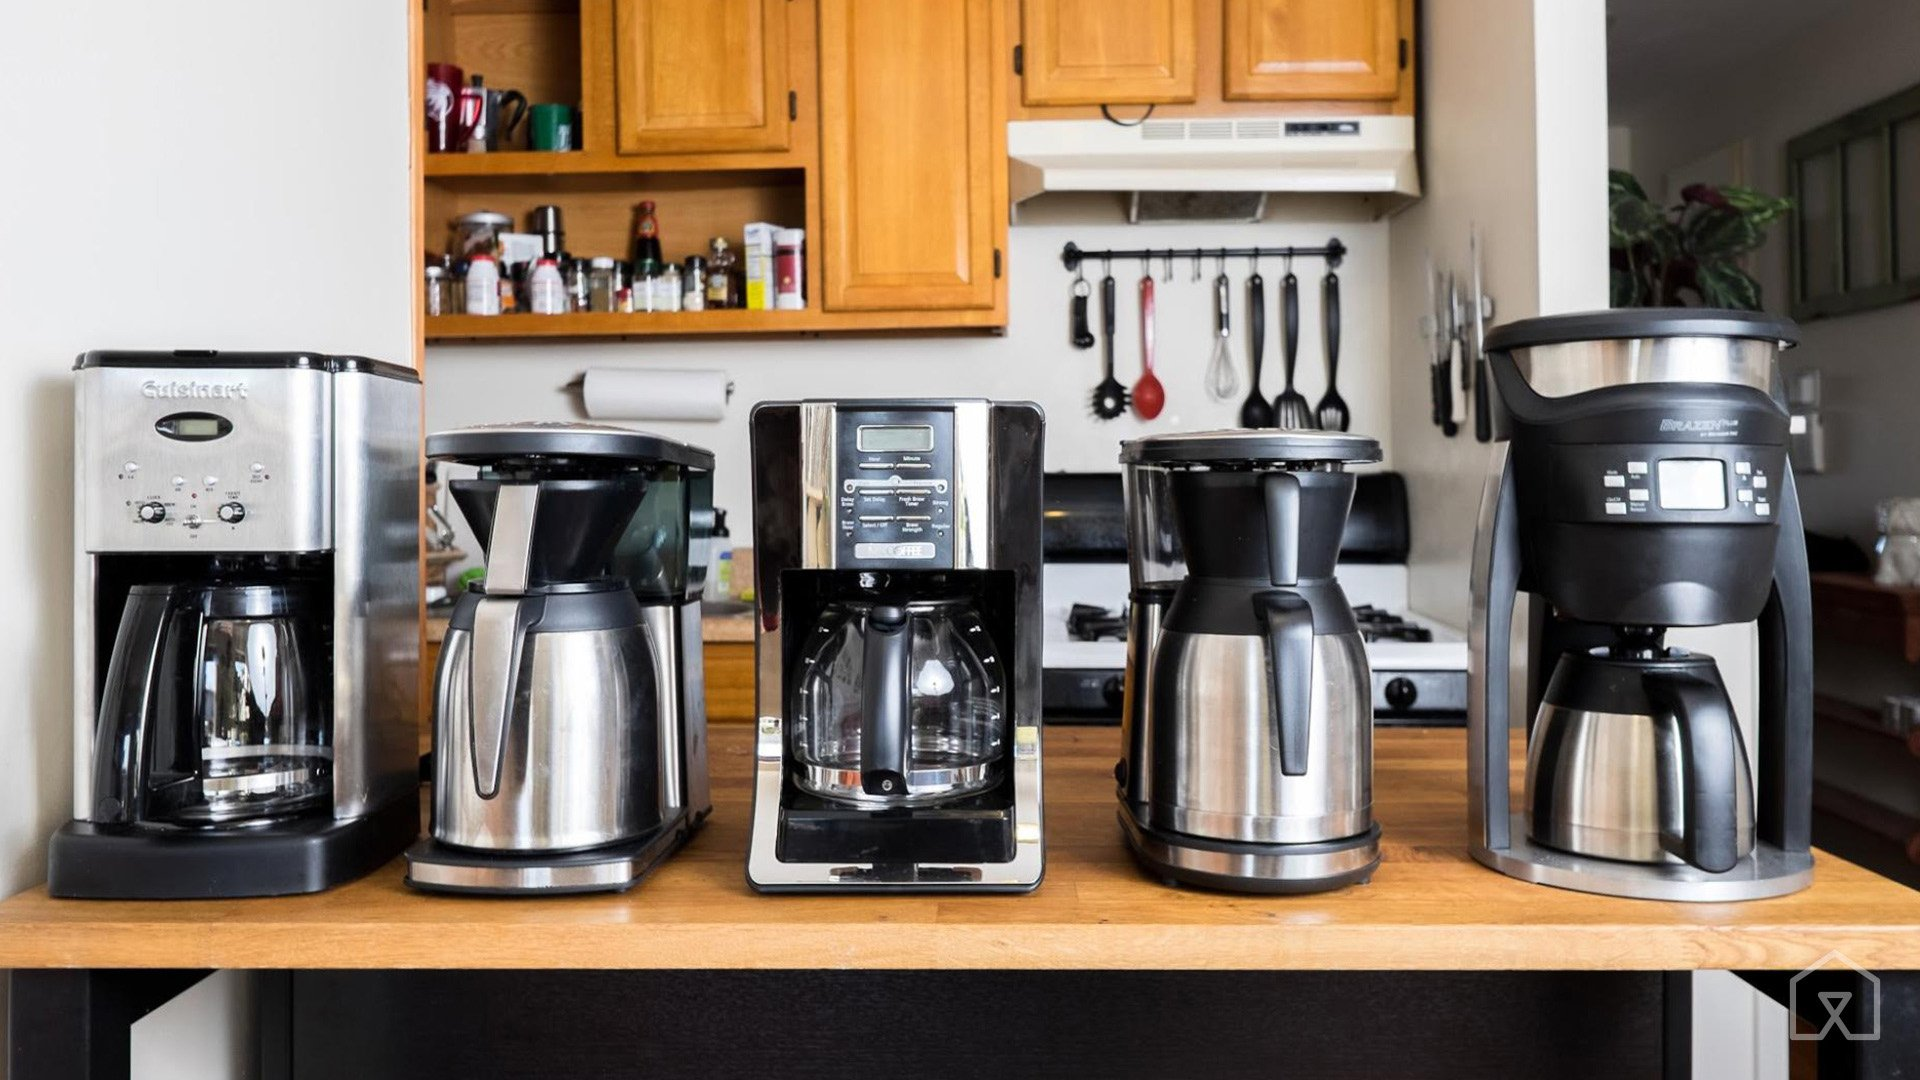 10 Best Coffee Maker of 2017 - Reviews and Ratings From Customers